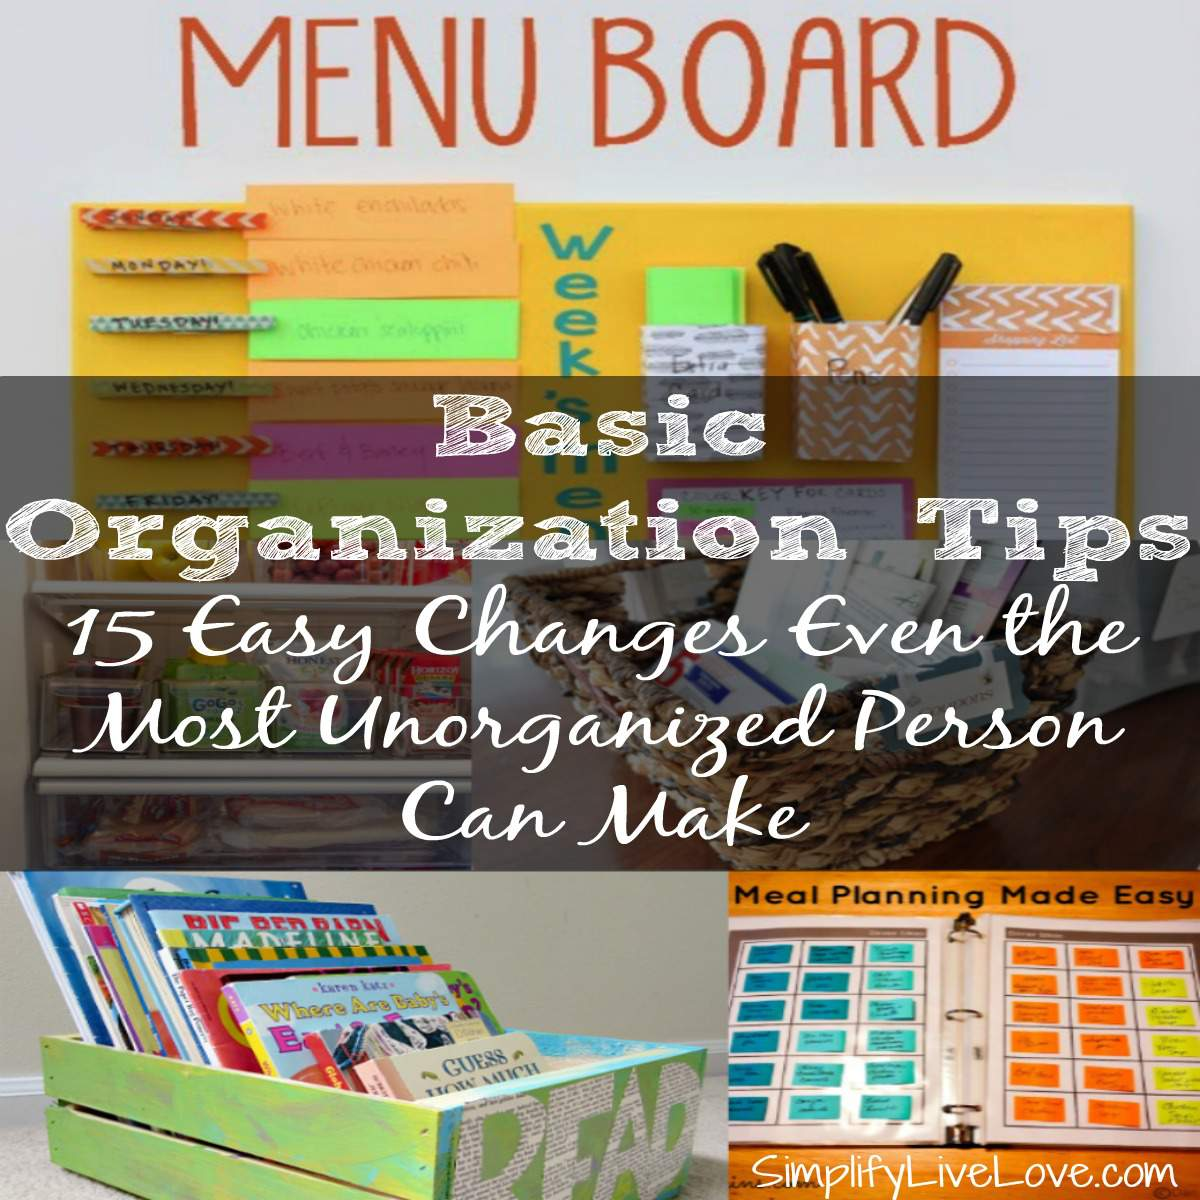 Home Organization Tips 15 Easy Changes Even The Most